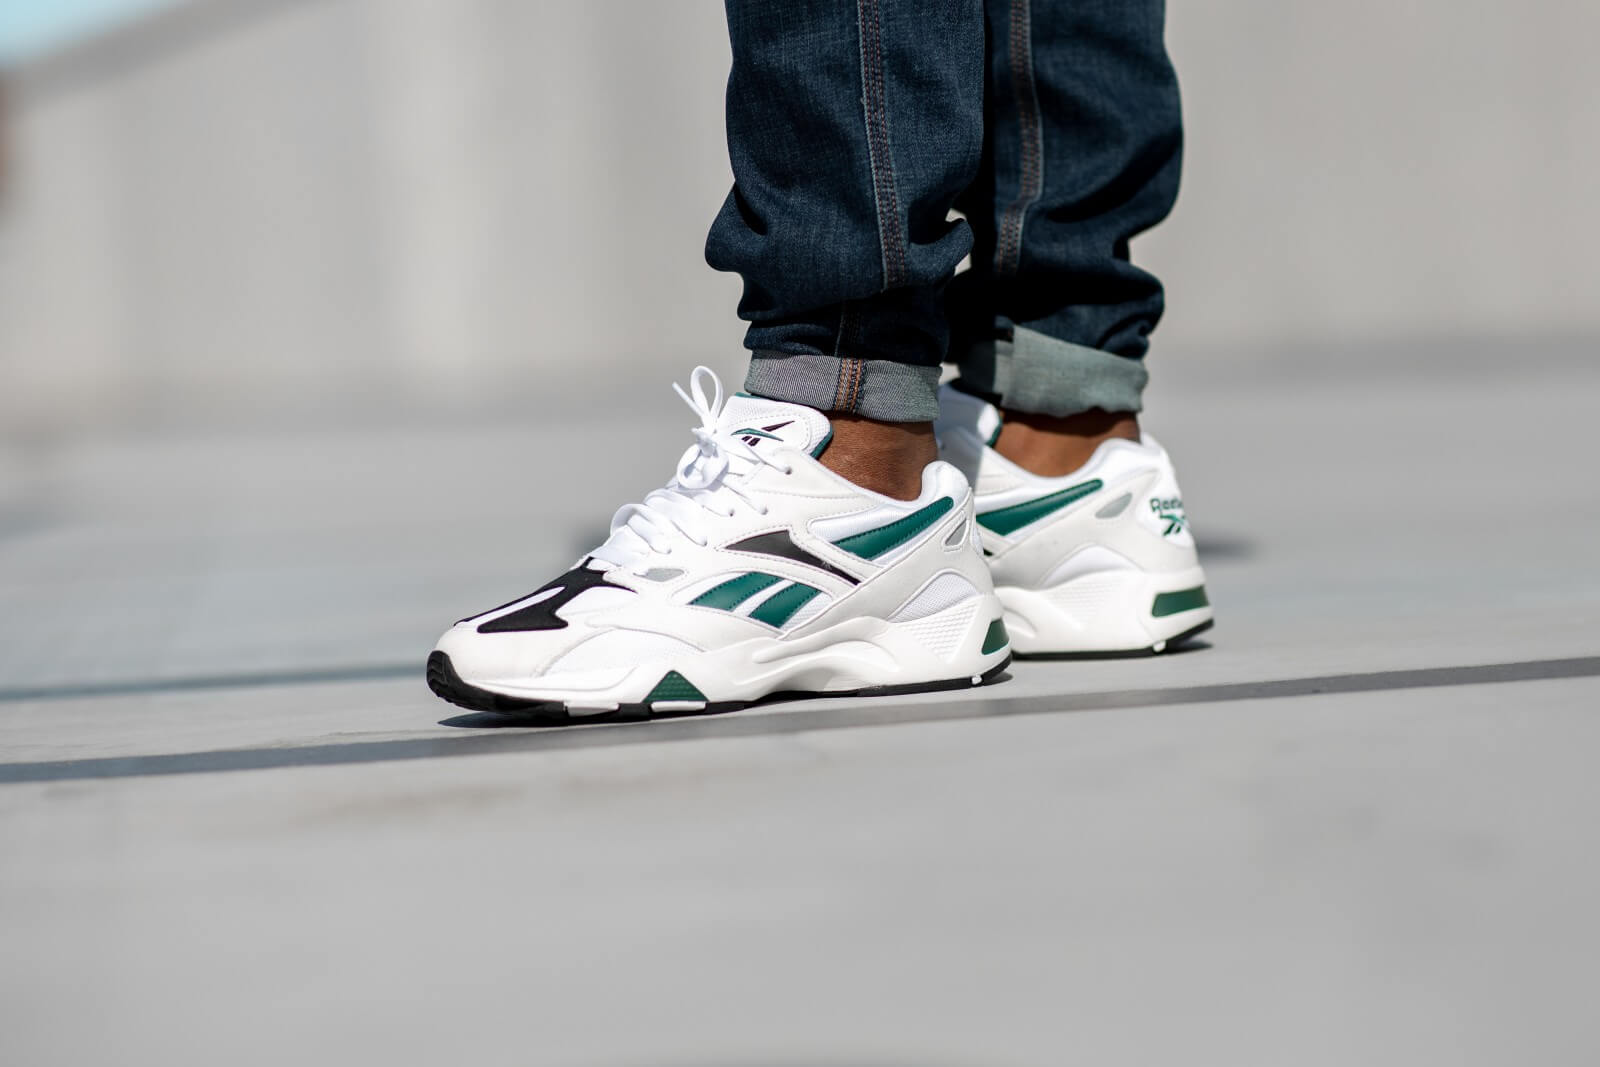 Reebok Aztrek 96 WhiteRapid Teal Black DV6757